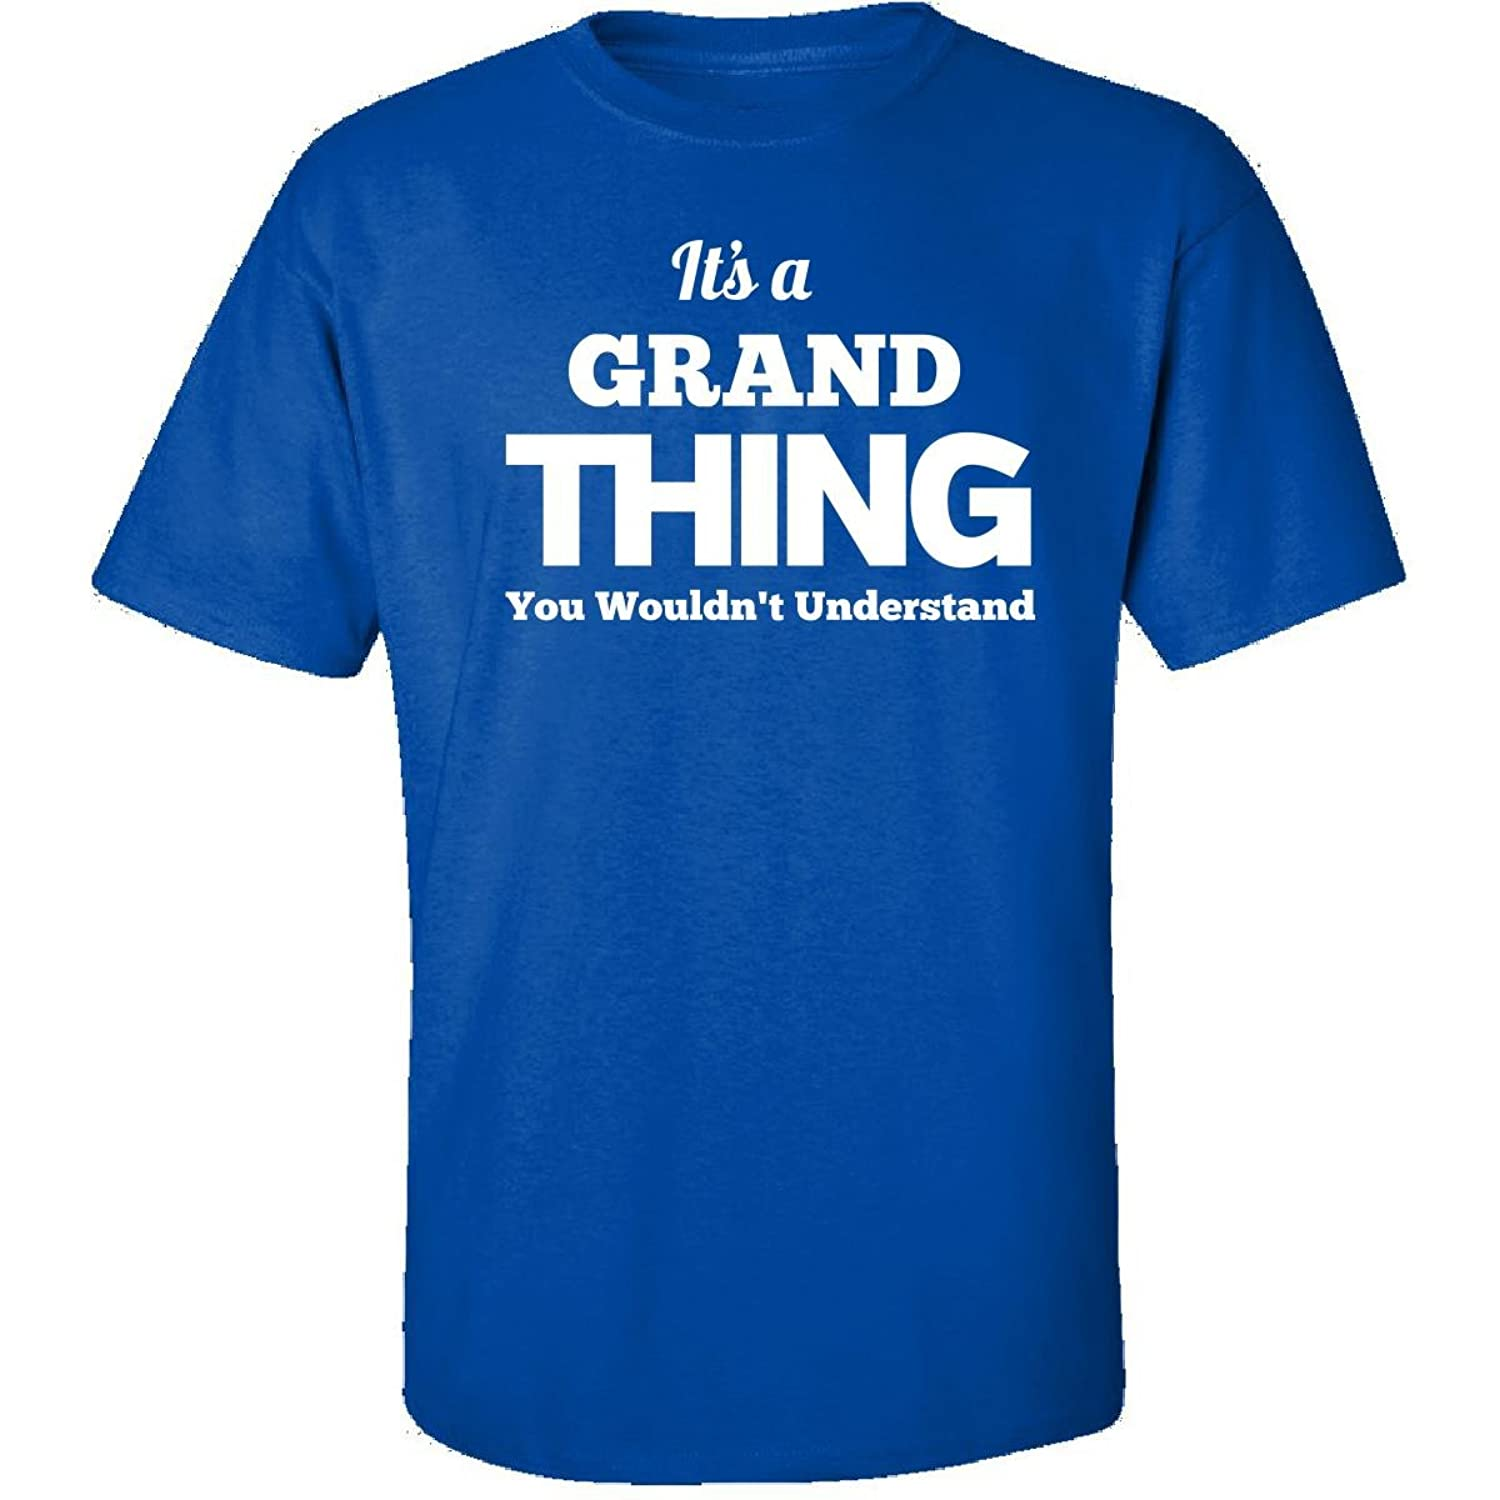 Its A Grand Thing You Wouldnt Understand - Adult Shirt